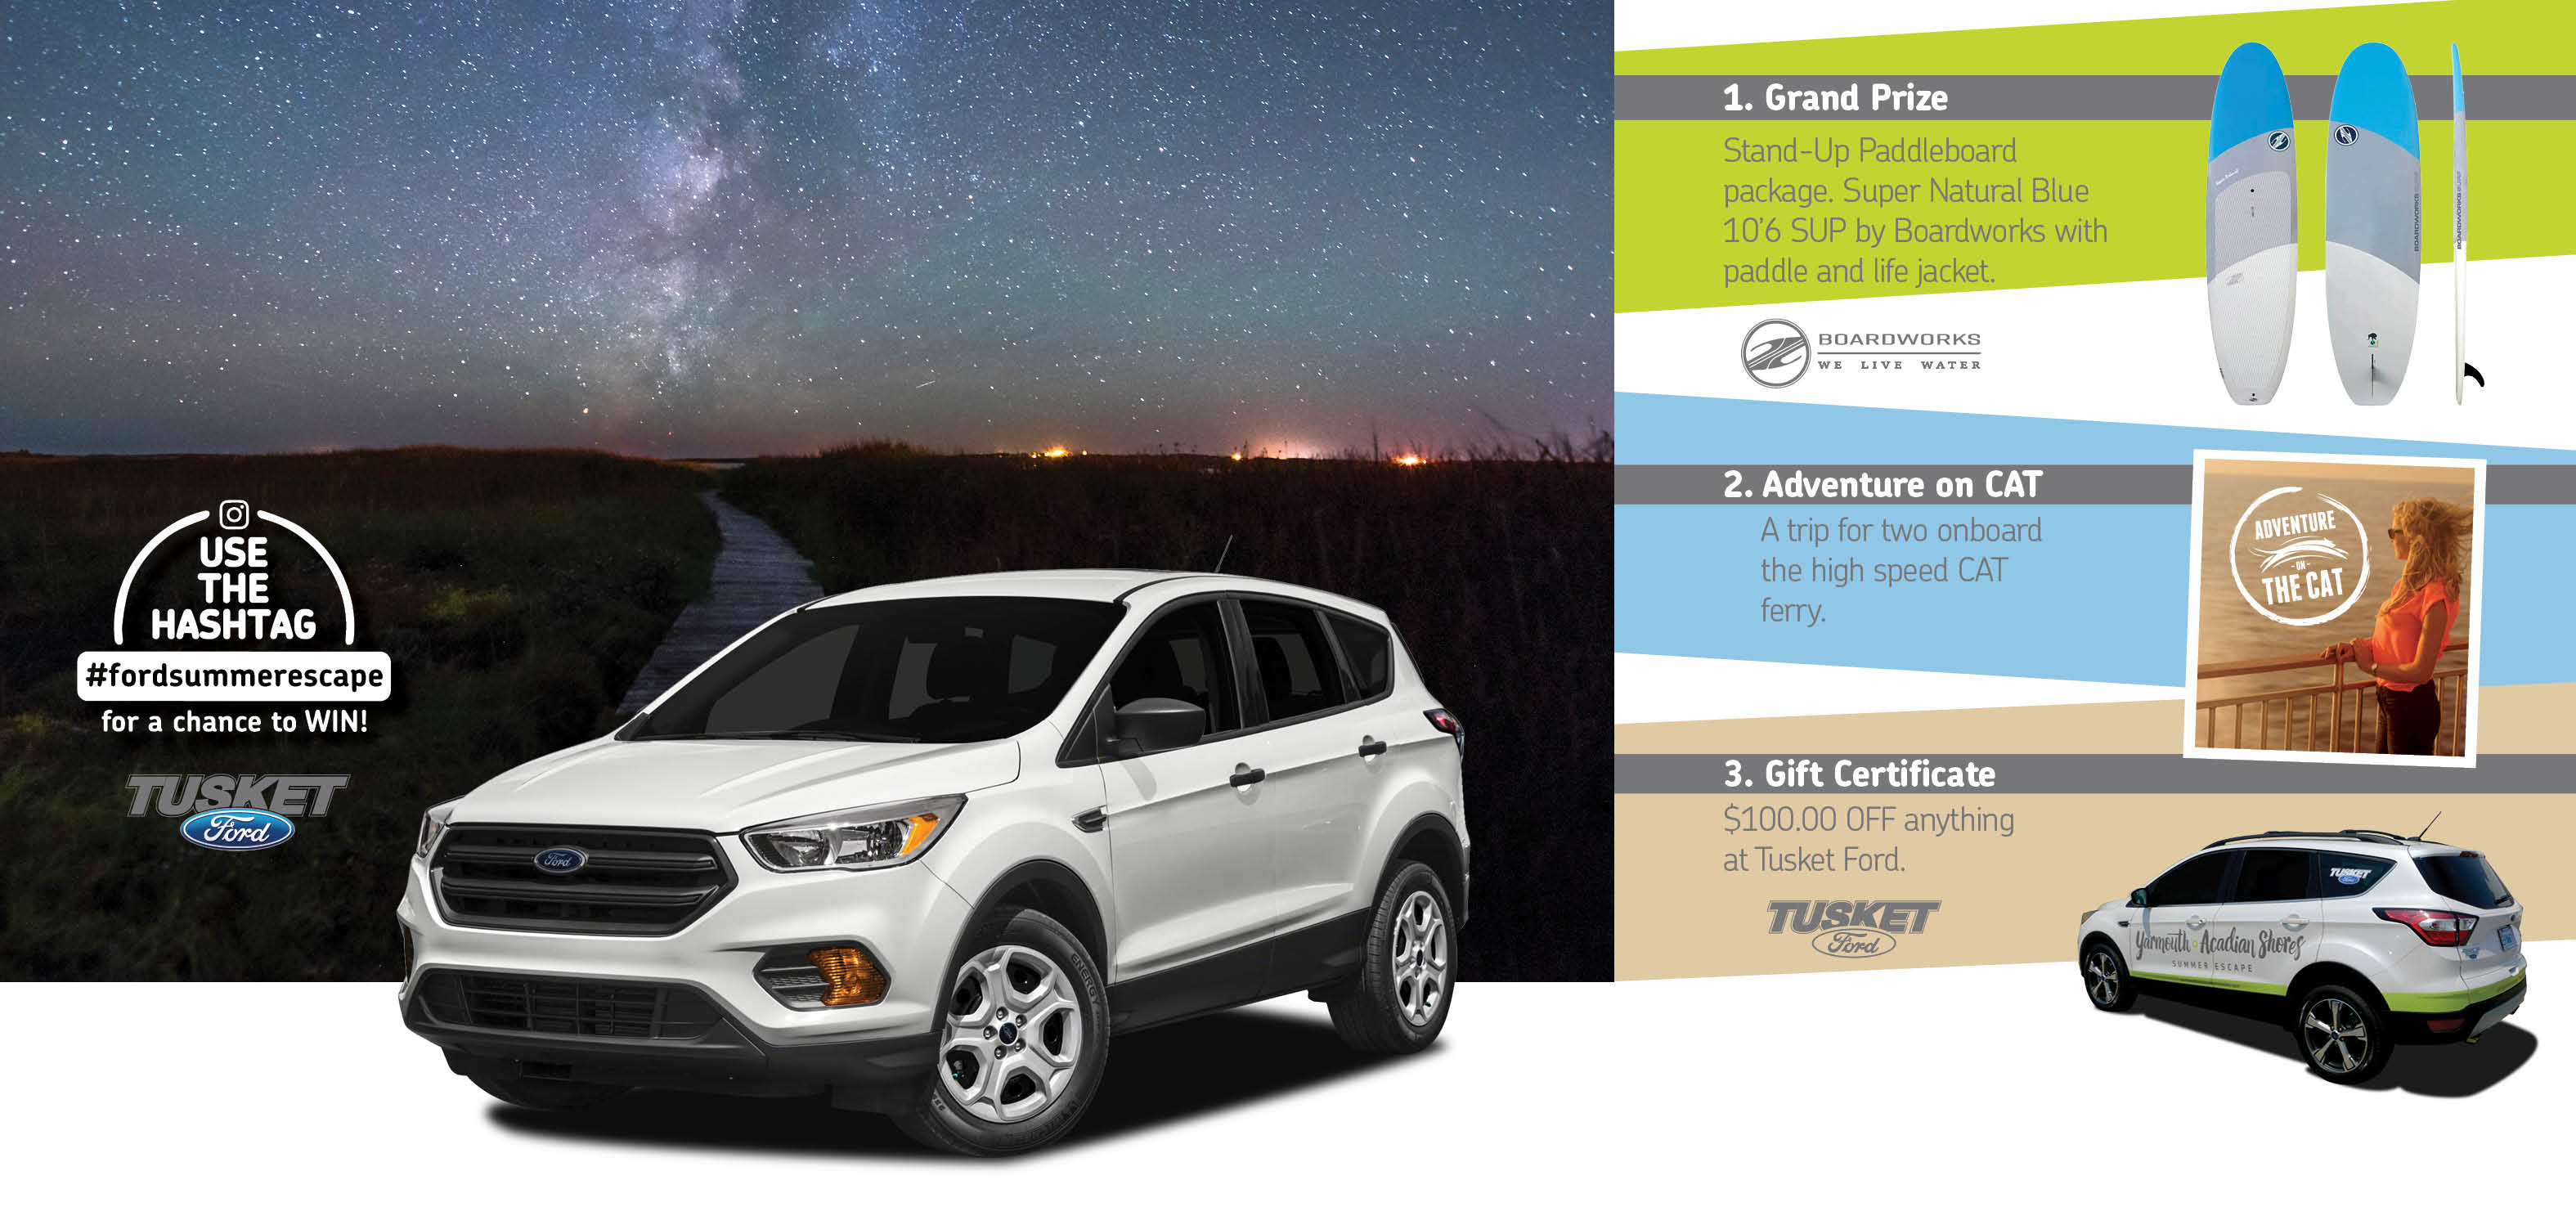 The Tusket Ford/Yarmouth and Acadian Shores Summer Escape